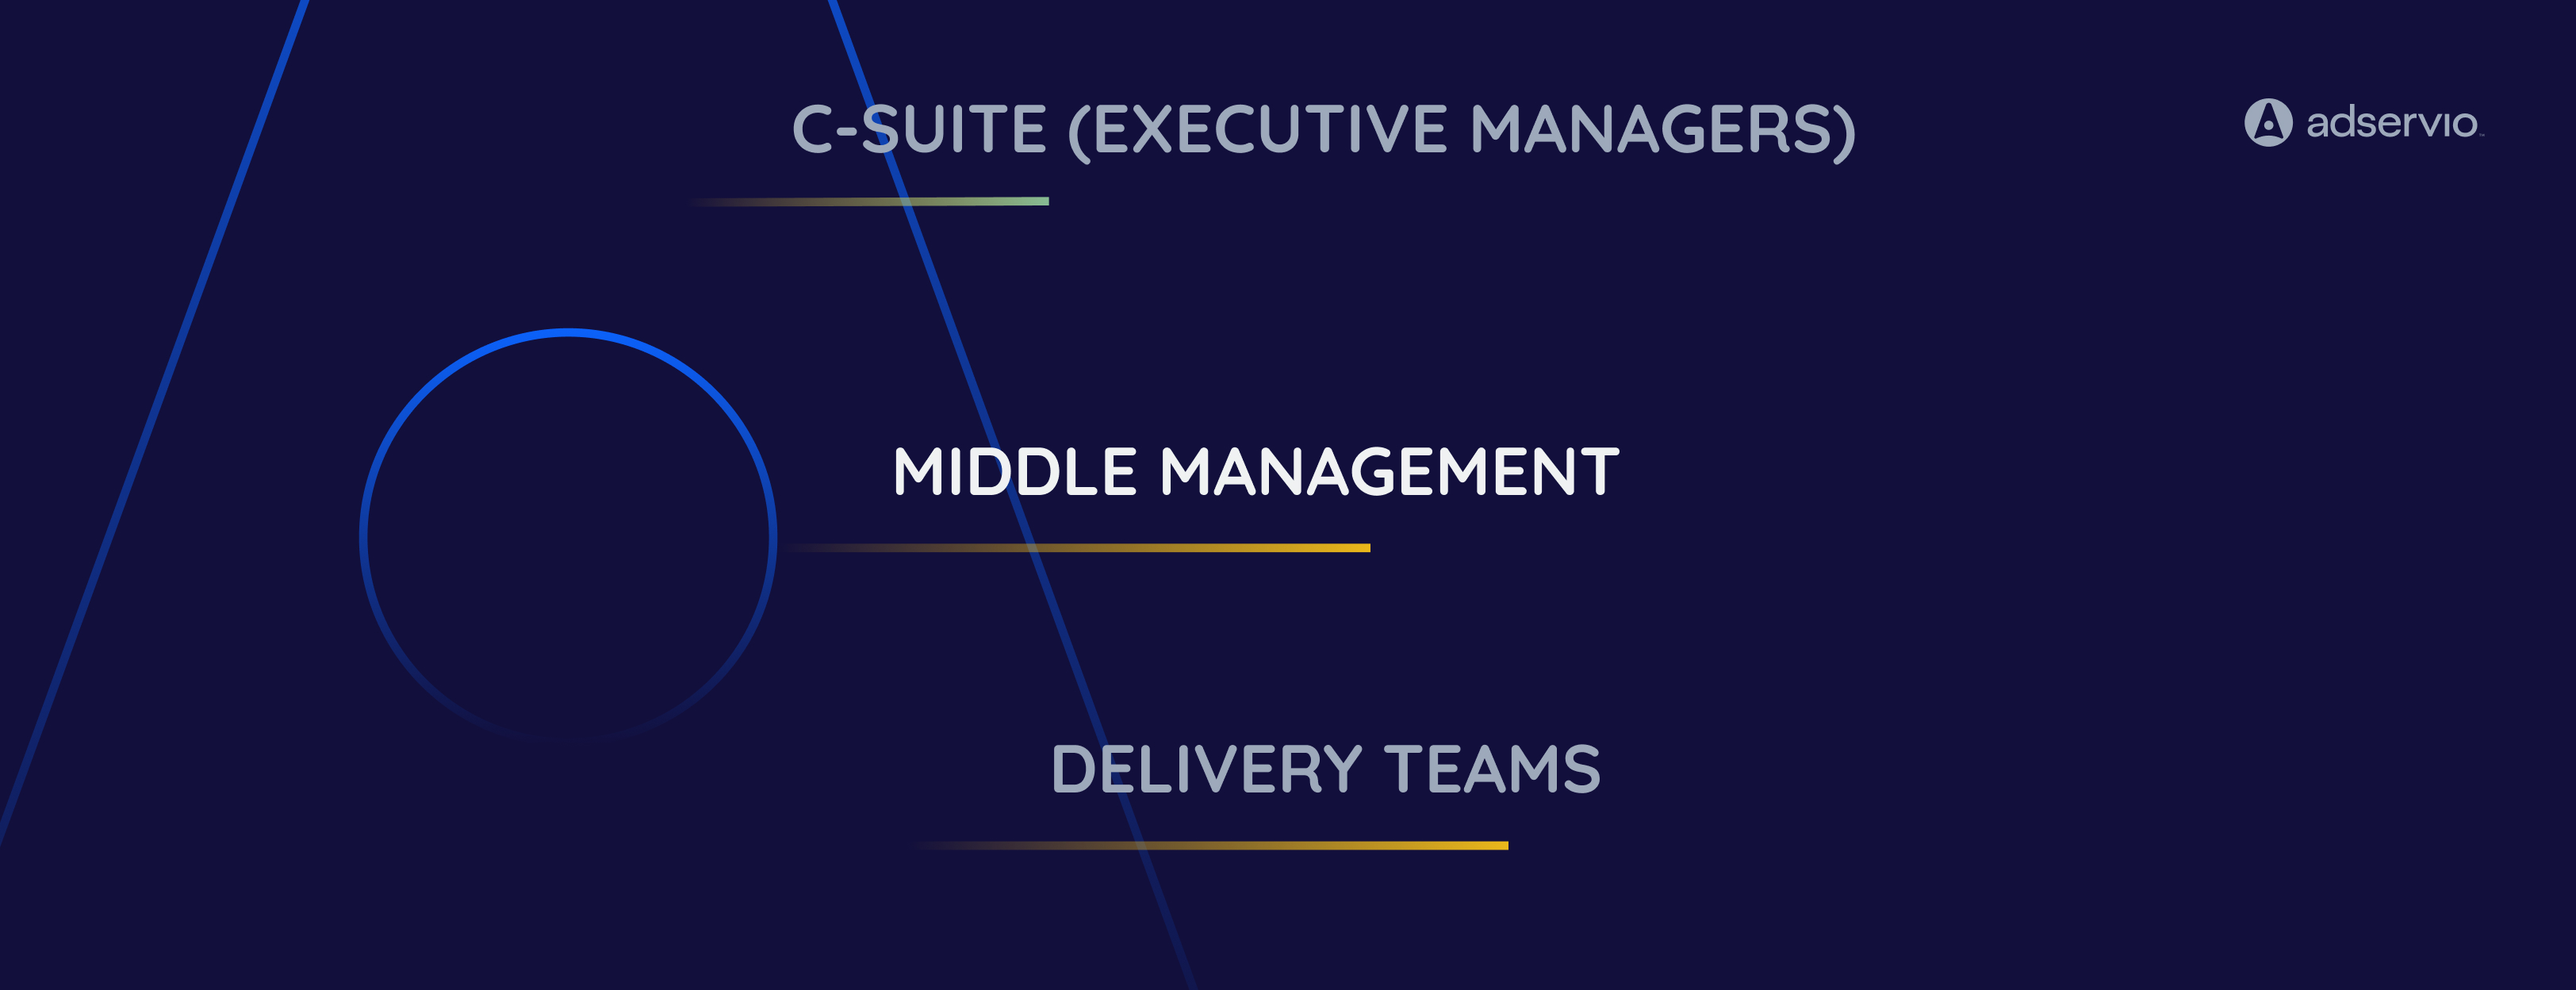 middle management responsible for successfully agile shifting